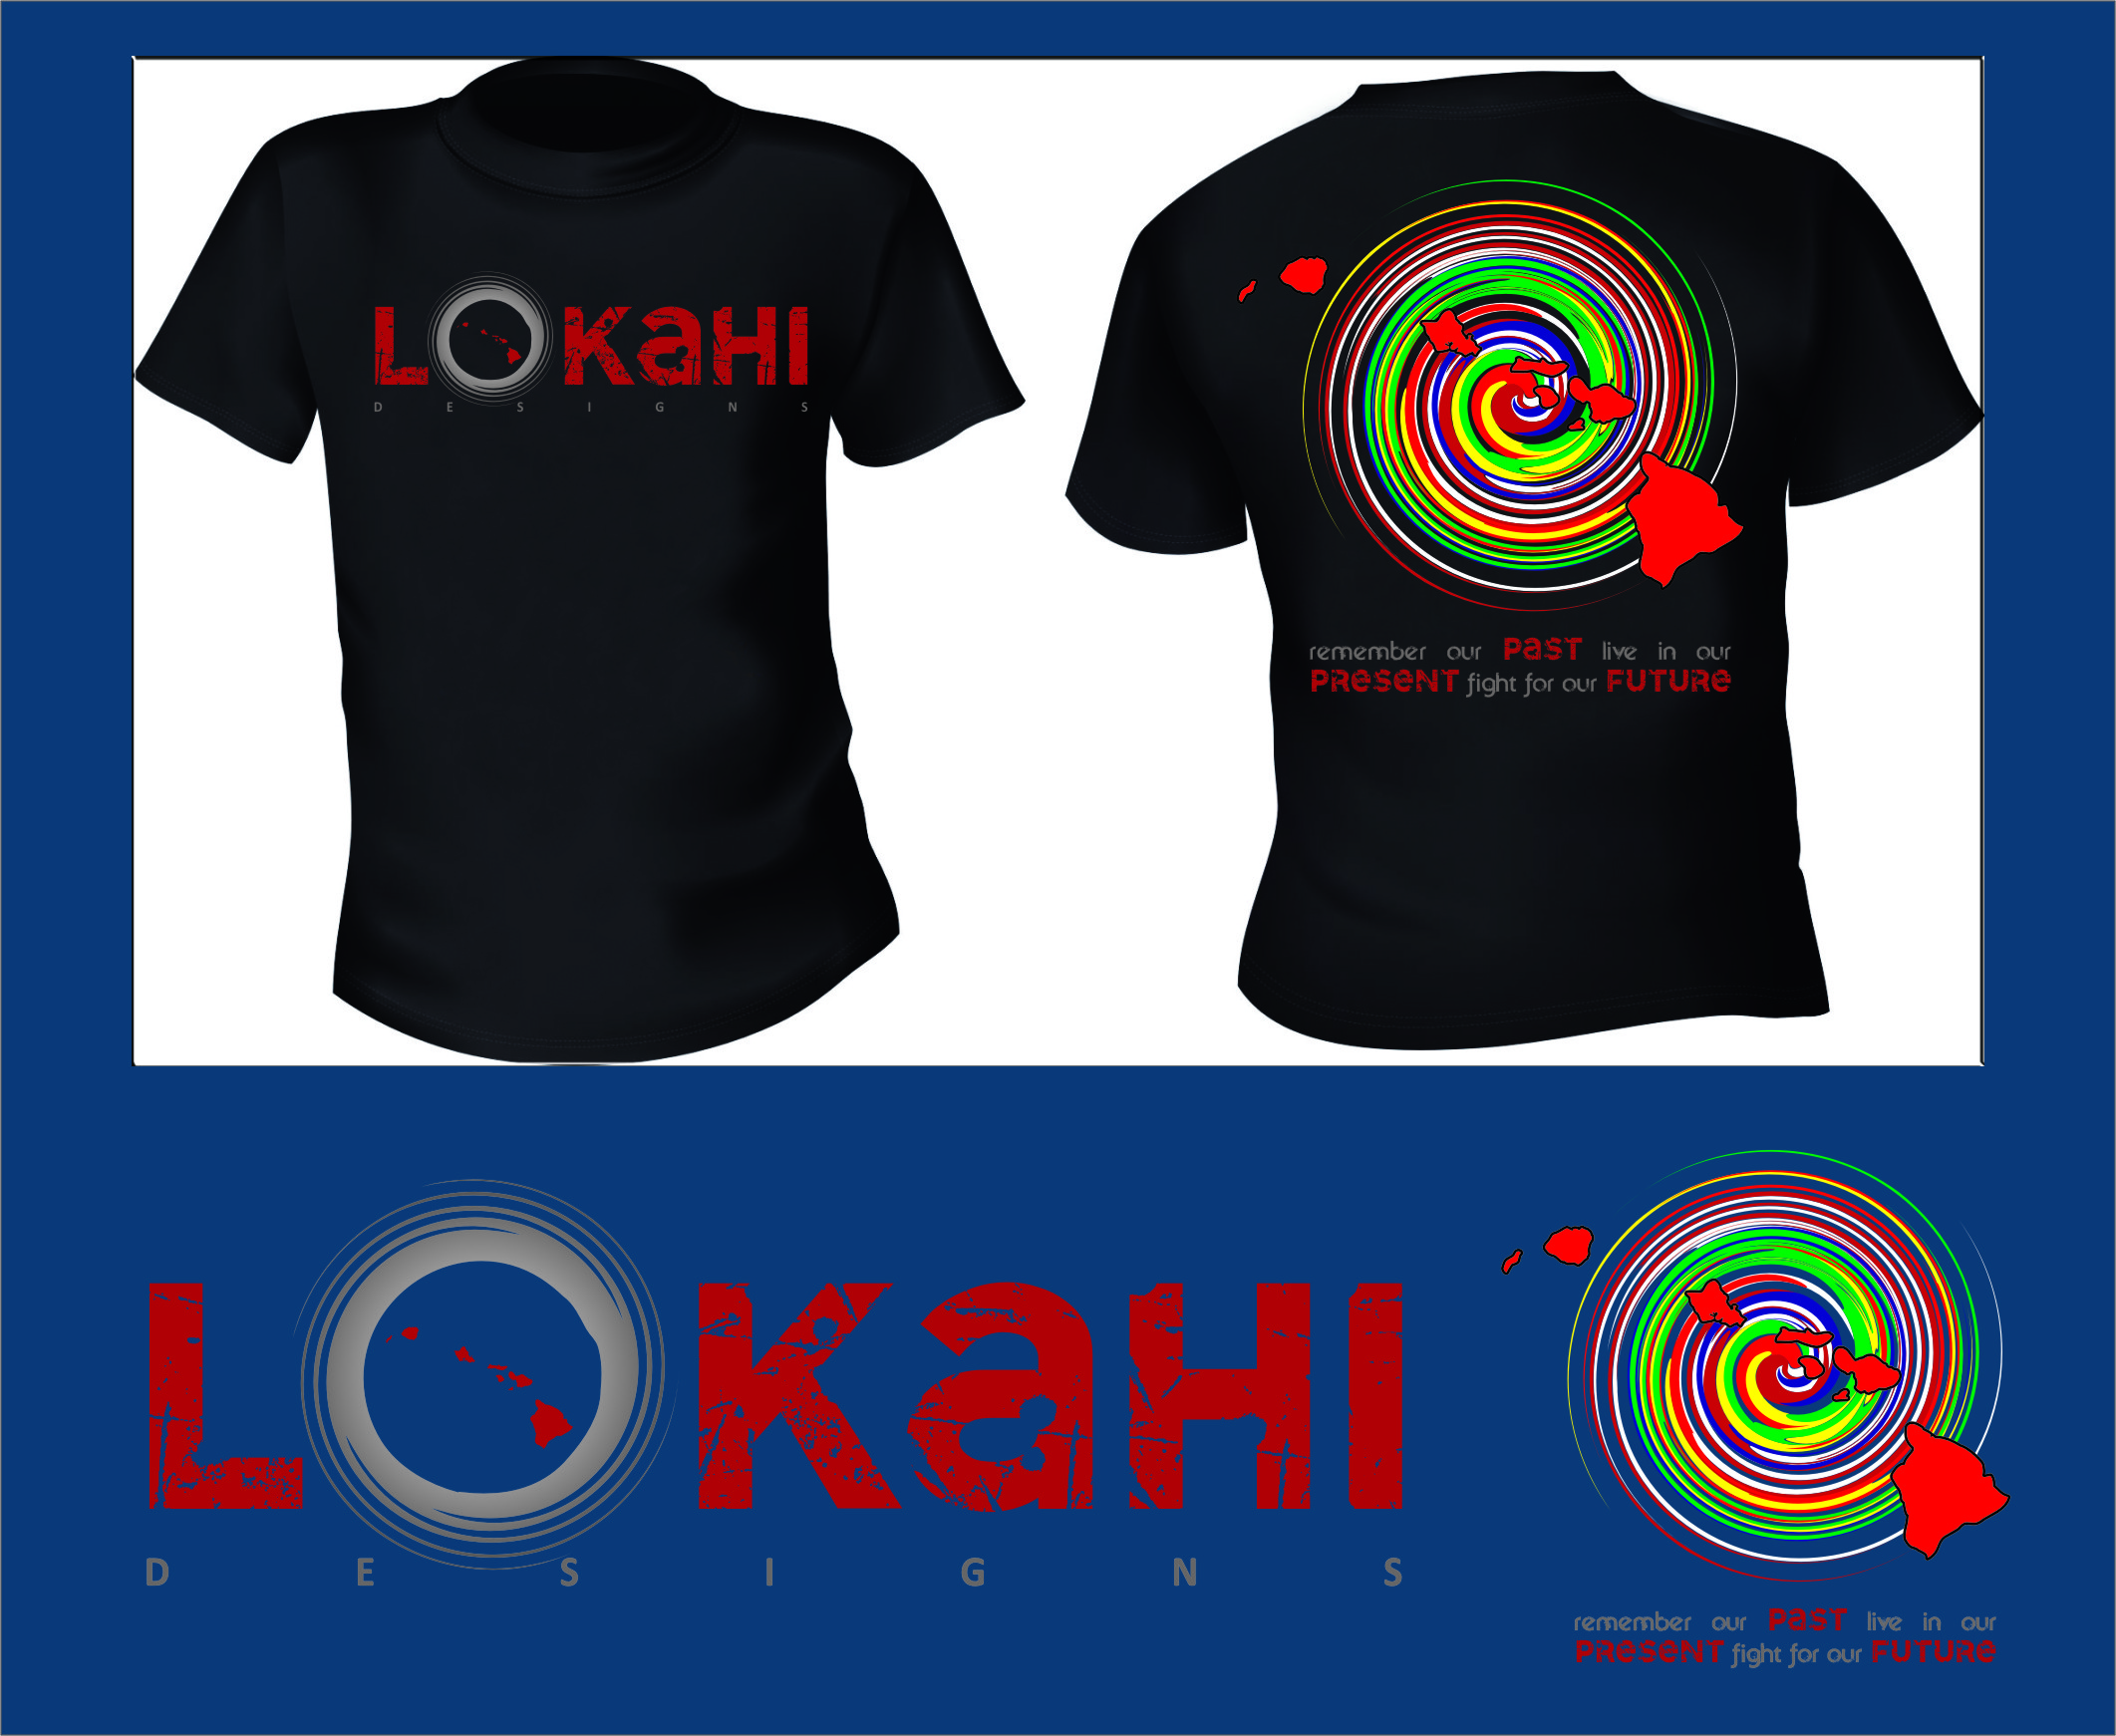 Clothing Design by Ngepet_art - Entry No. 57 in the Clothing Design Contest Creative Clothing Design for LOKAHI designs.